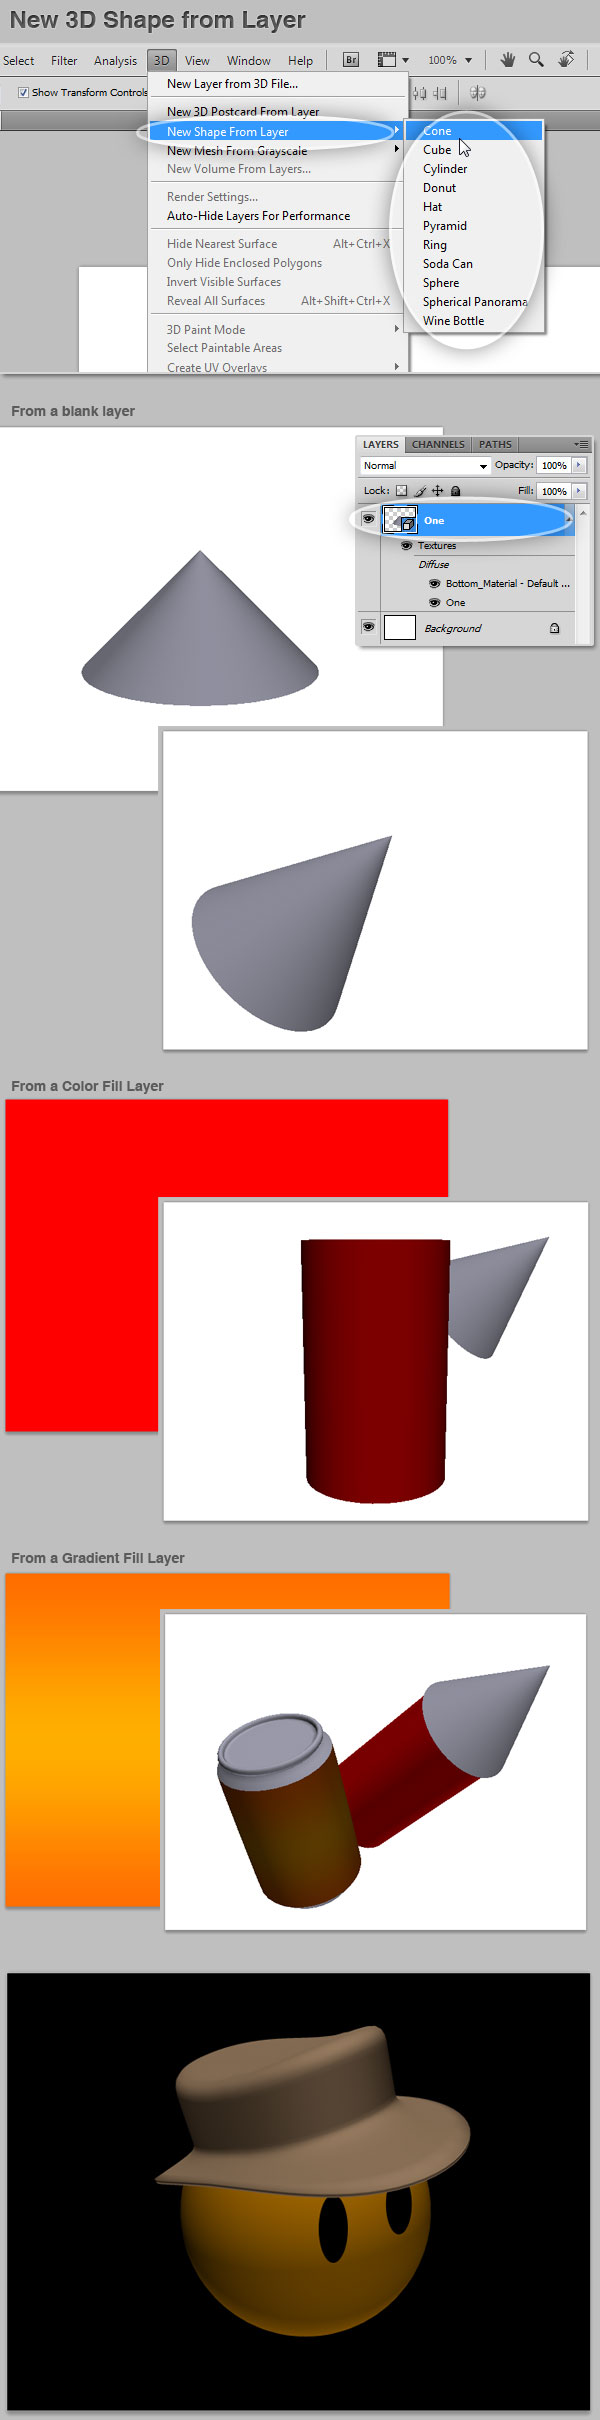 3D new shape form layer